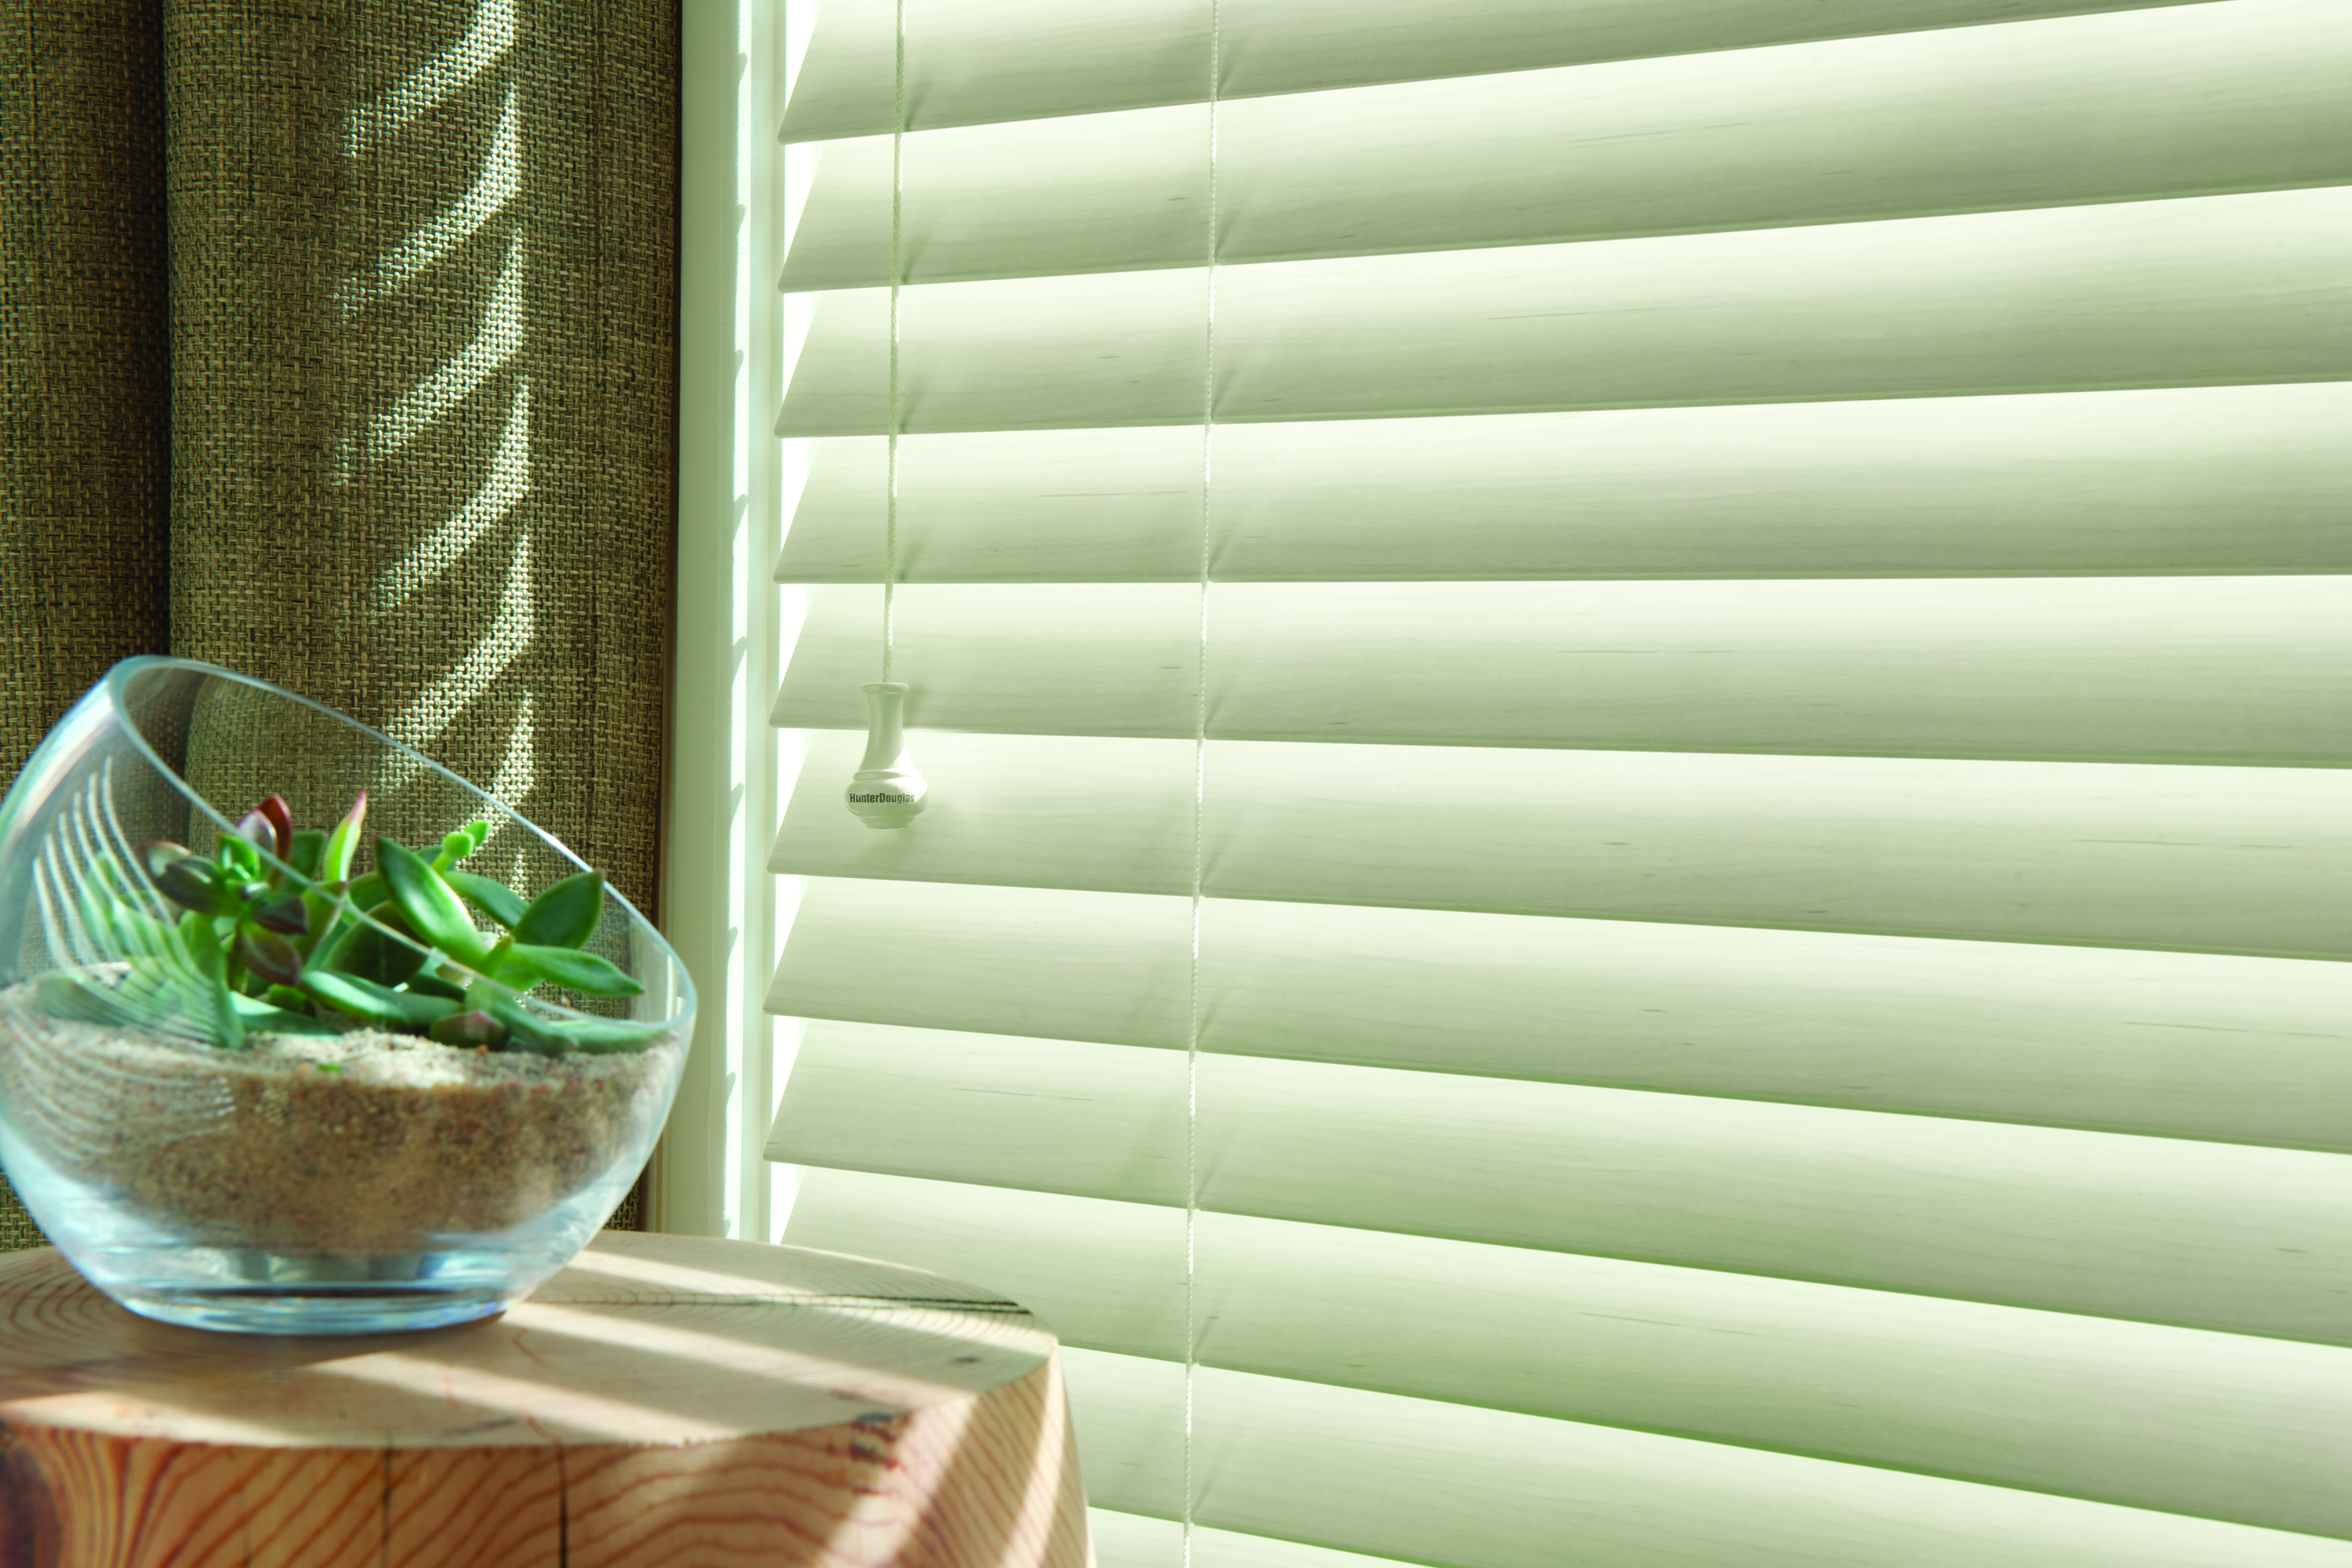 Hunter Douglas wood blinds with standard cordlock system